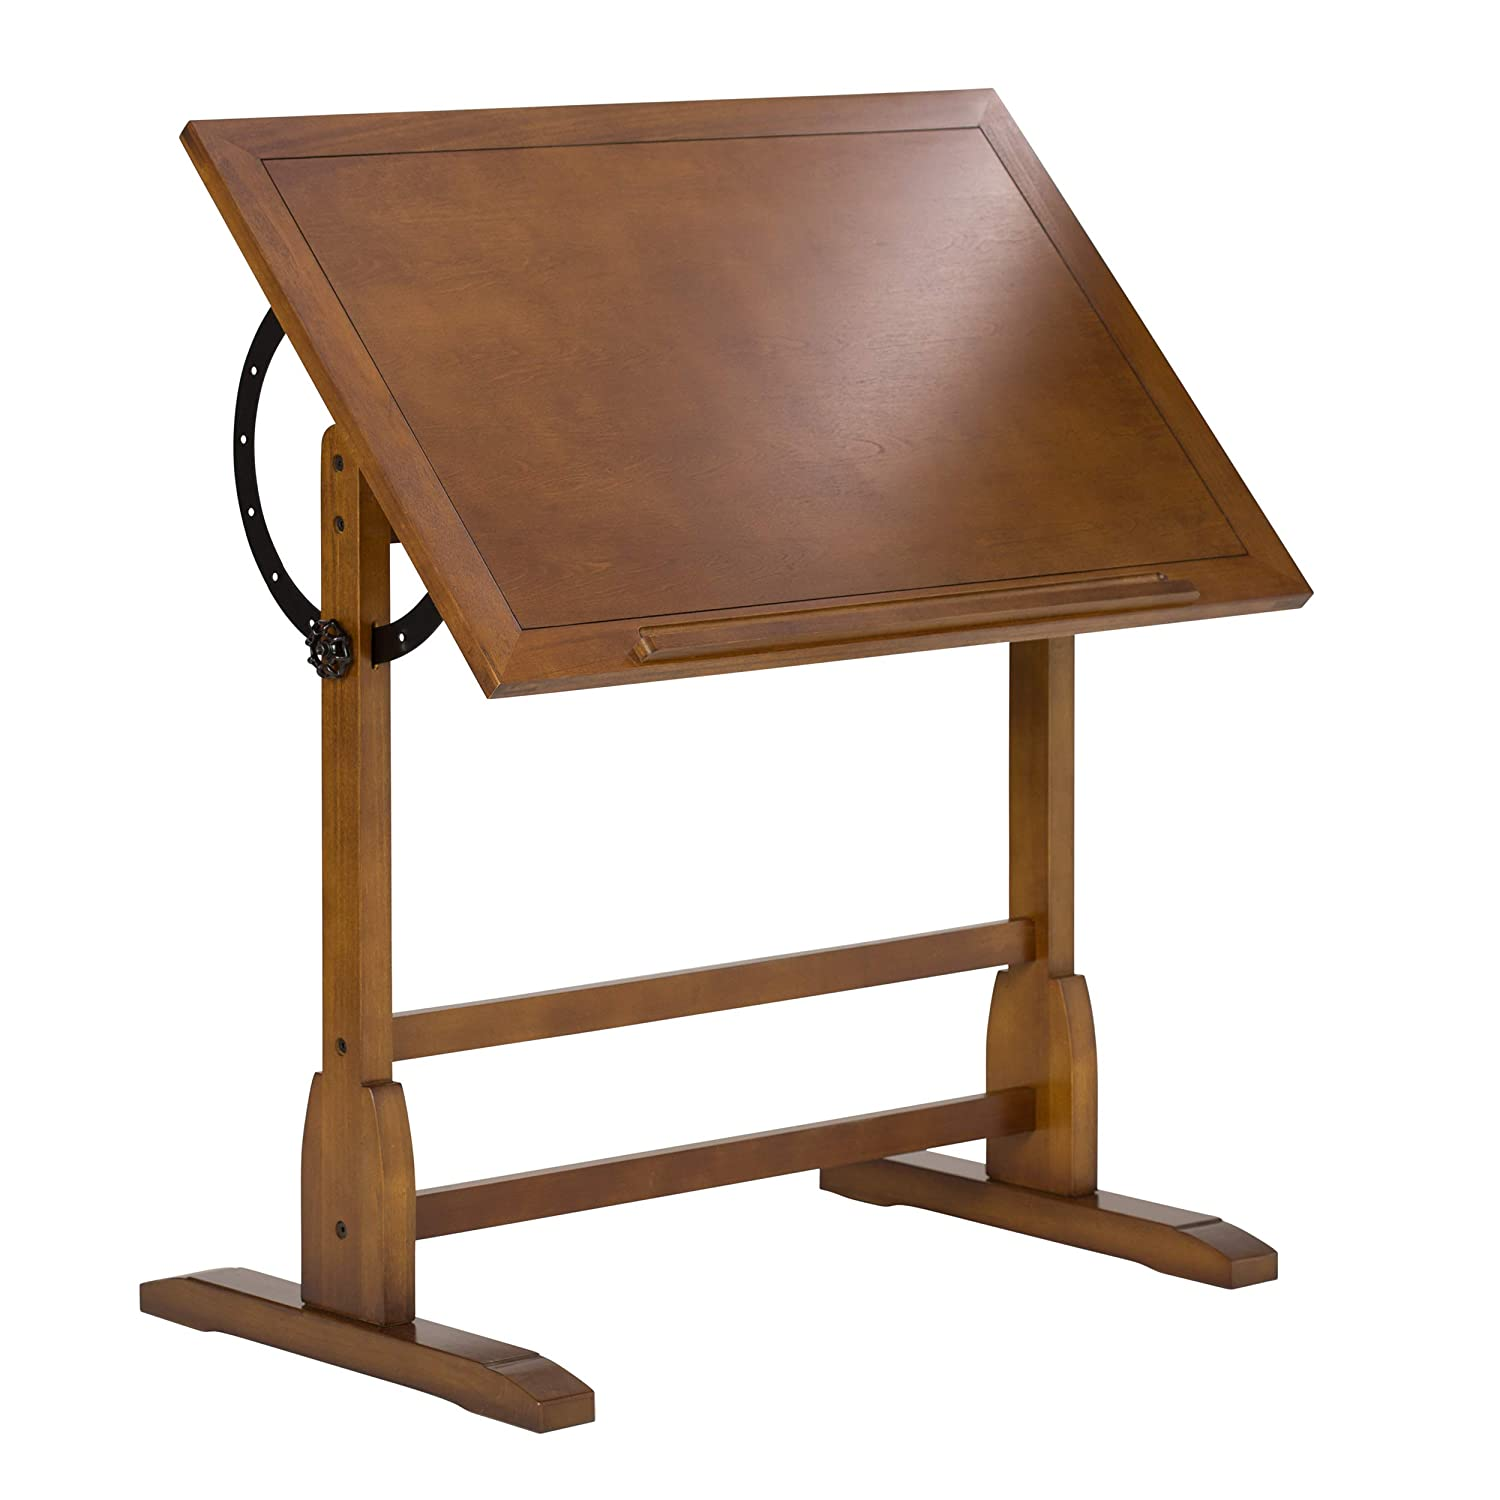 Studio Designs 13304 Weinlese Drafting Table - Eiche rustikal